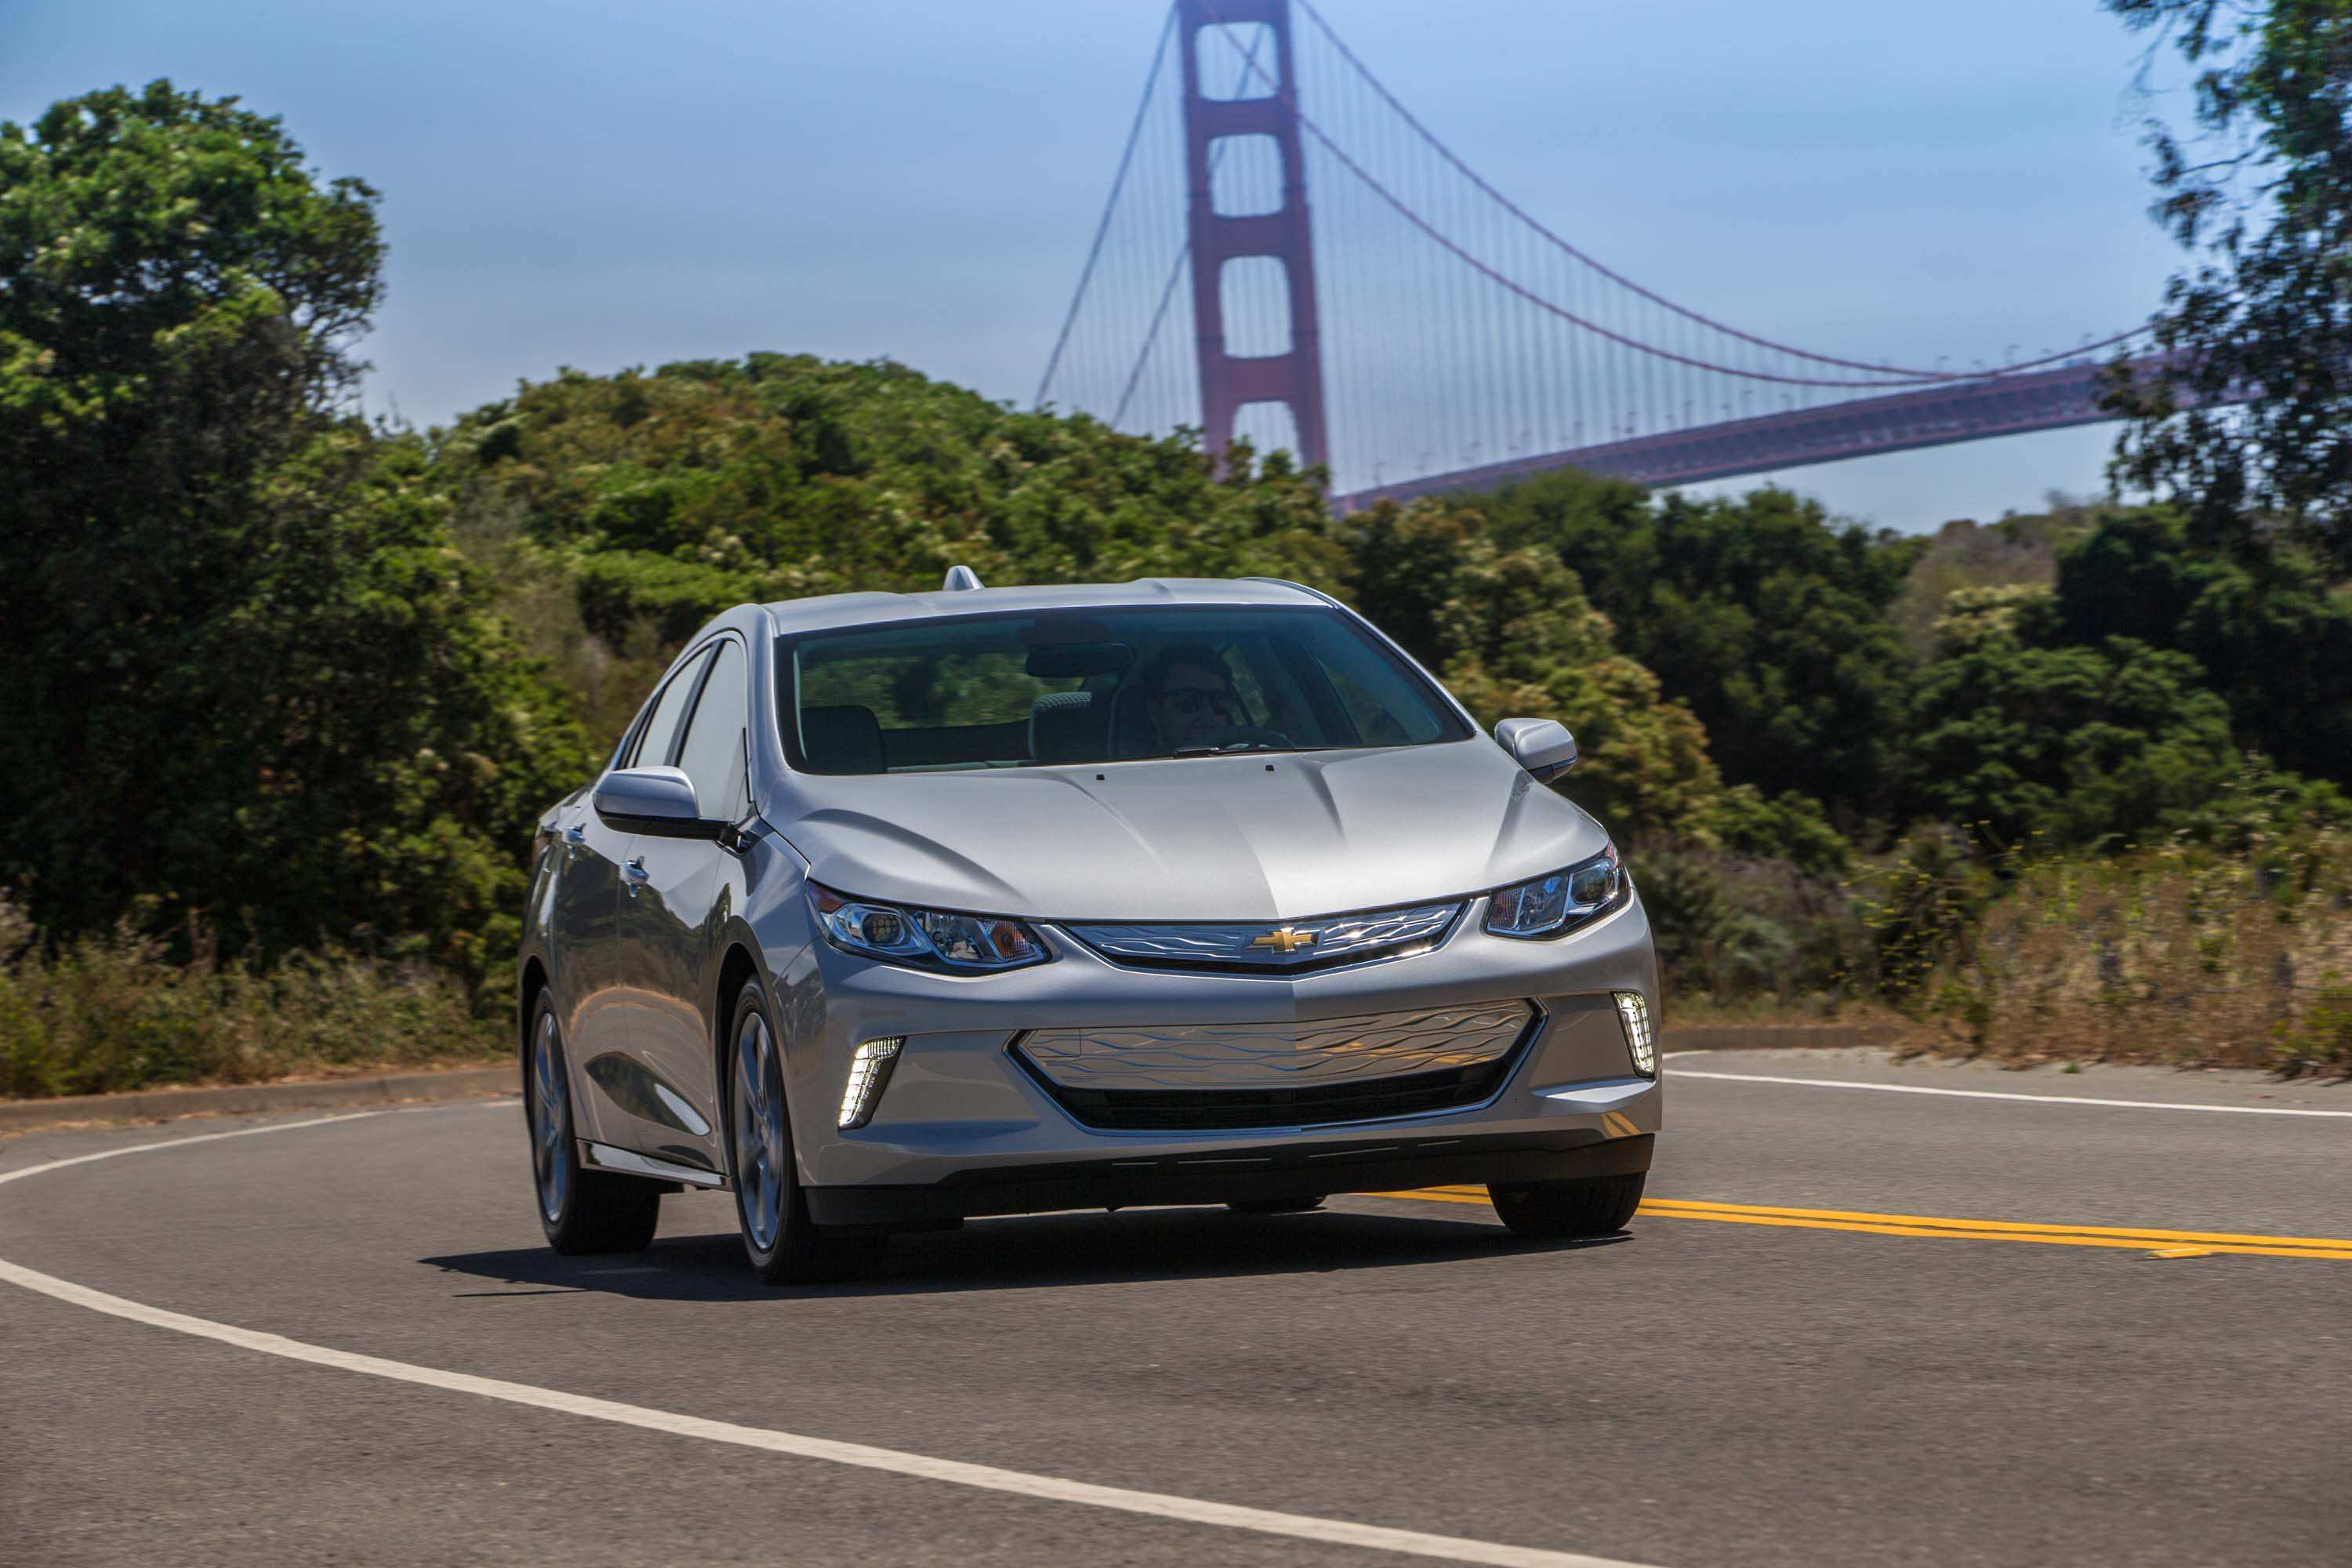 49 The Best 2020 Chevy Volt Overview